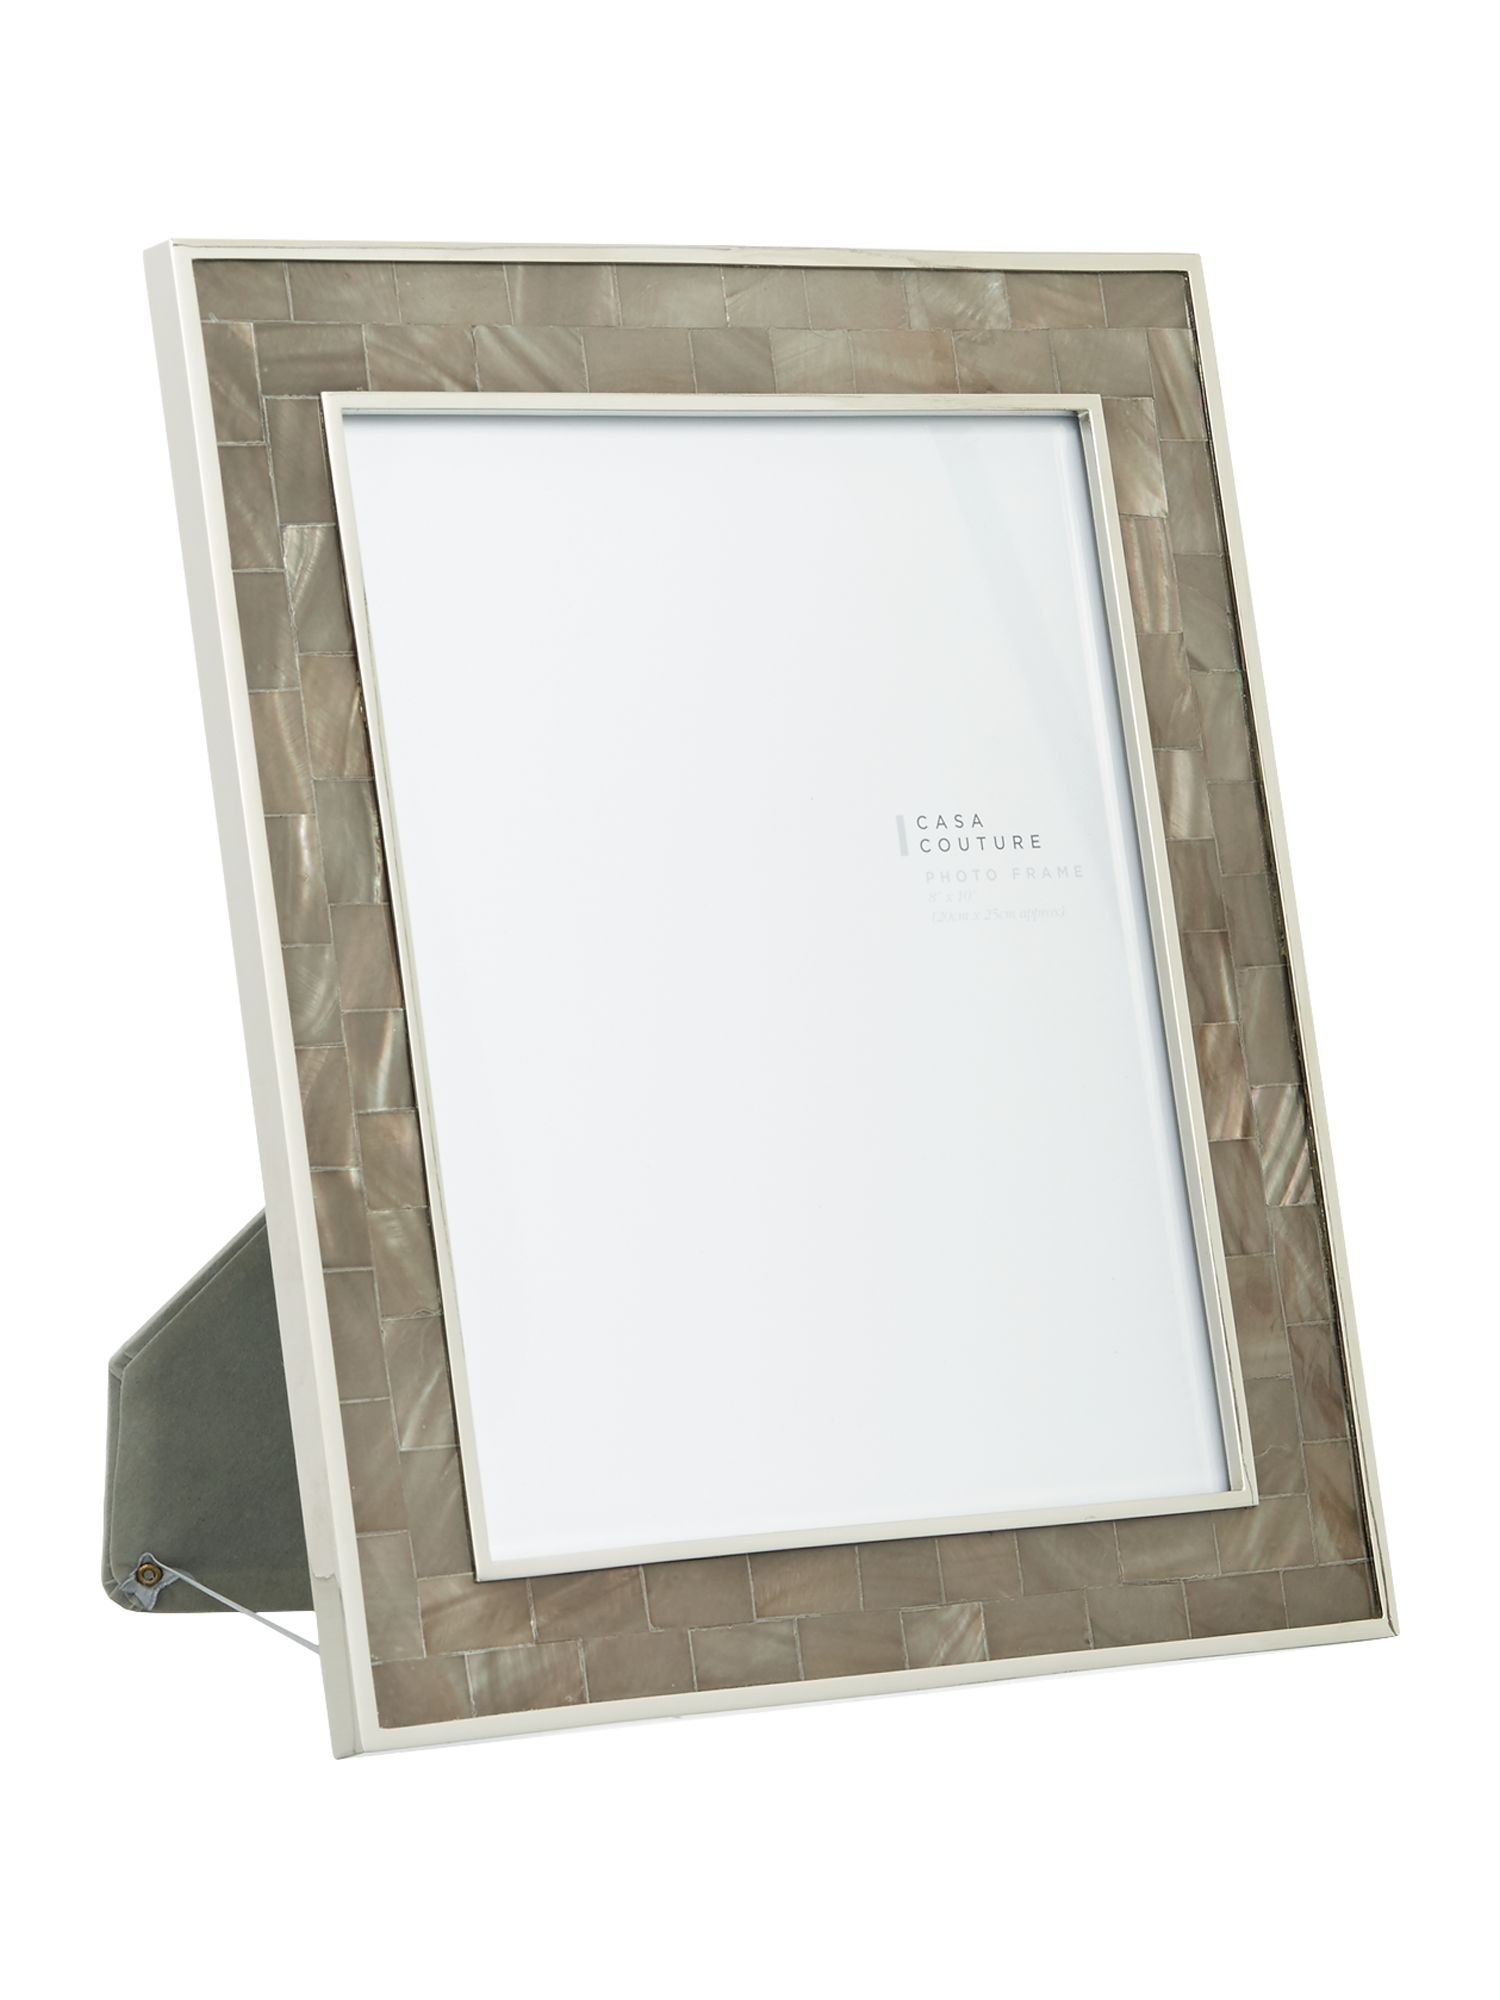 Casa Couture Casa Couture Grey Mother of pearl frame 8x10